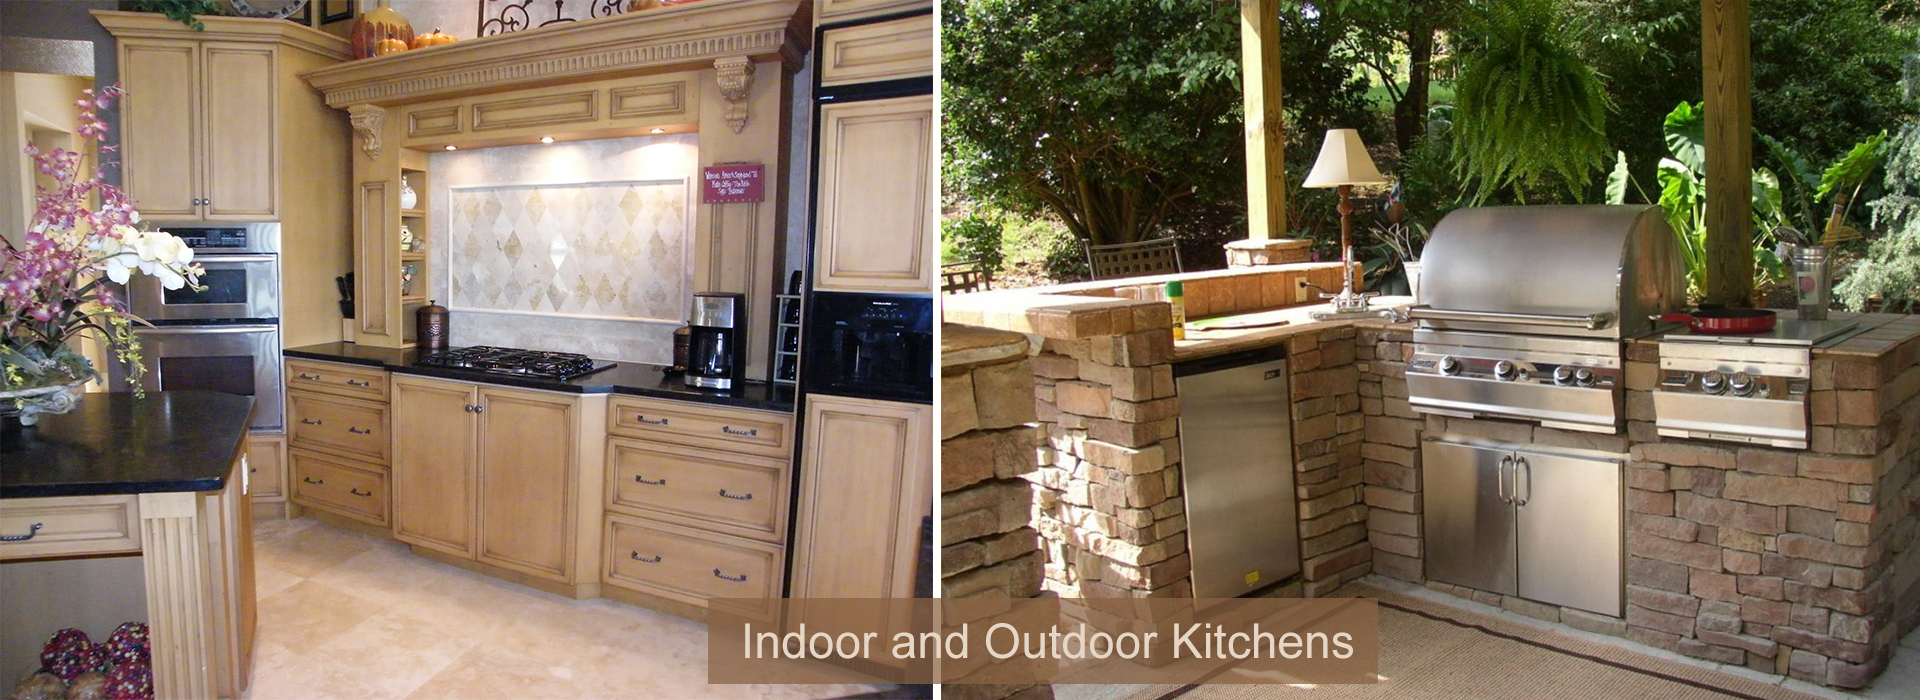 Indoor and Outdoor Kitchen Remodels